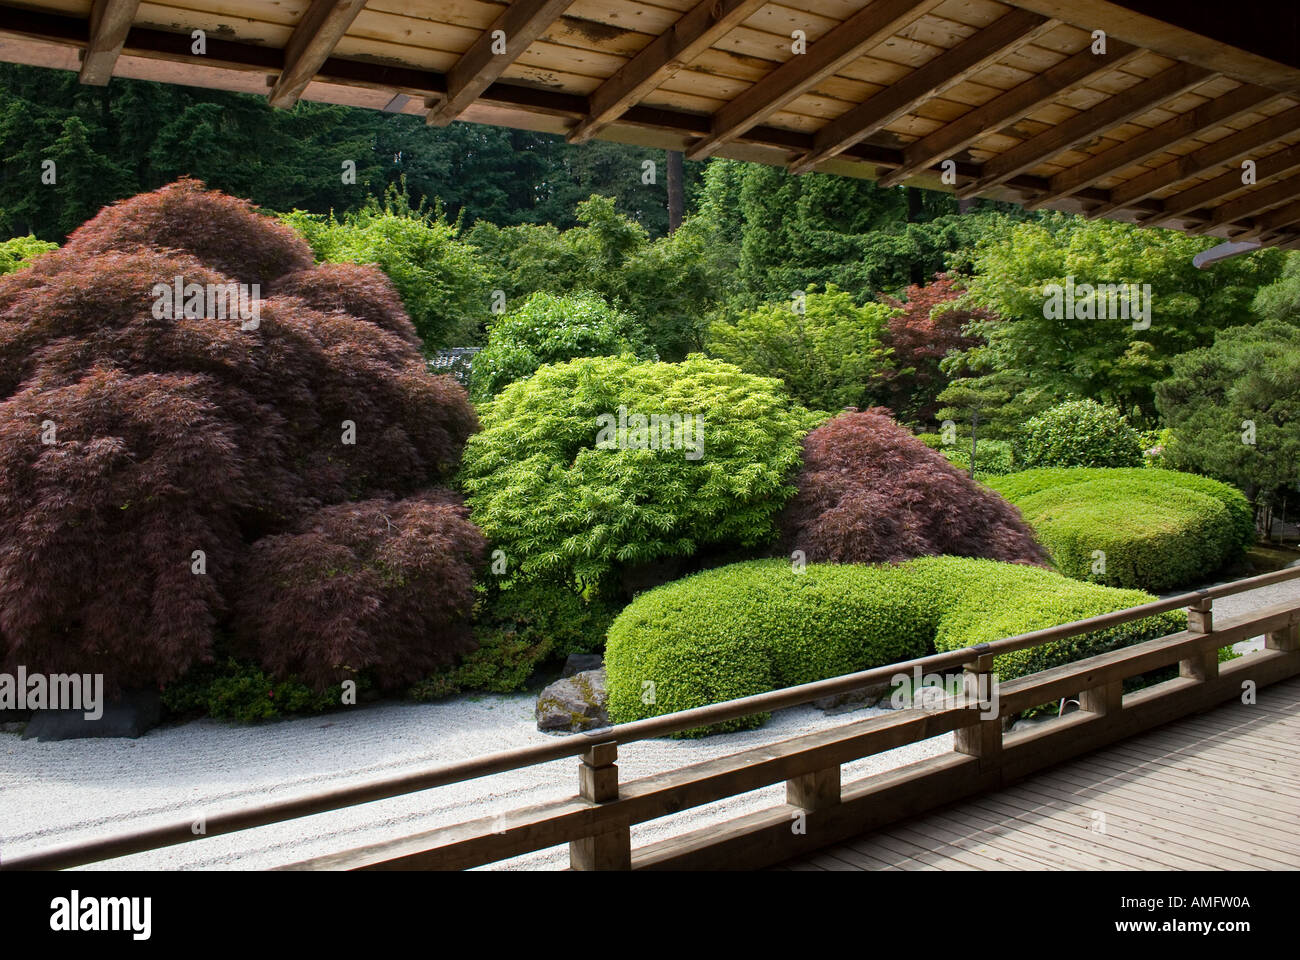 Raked Sand Plants At The Portland Japanese Garden Considered Most Authentic Outside Of Japan PORTLAND